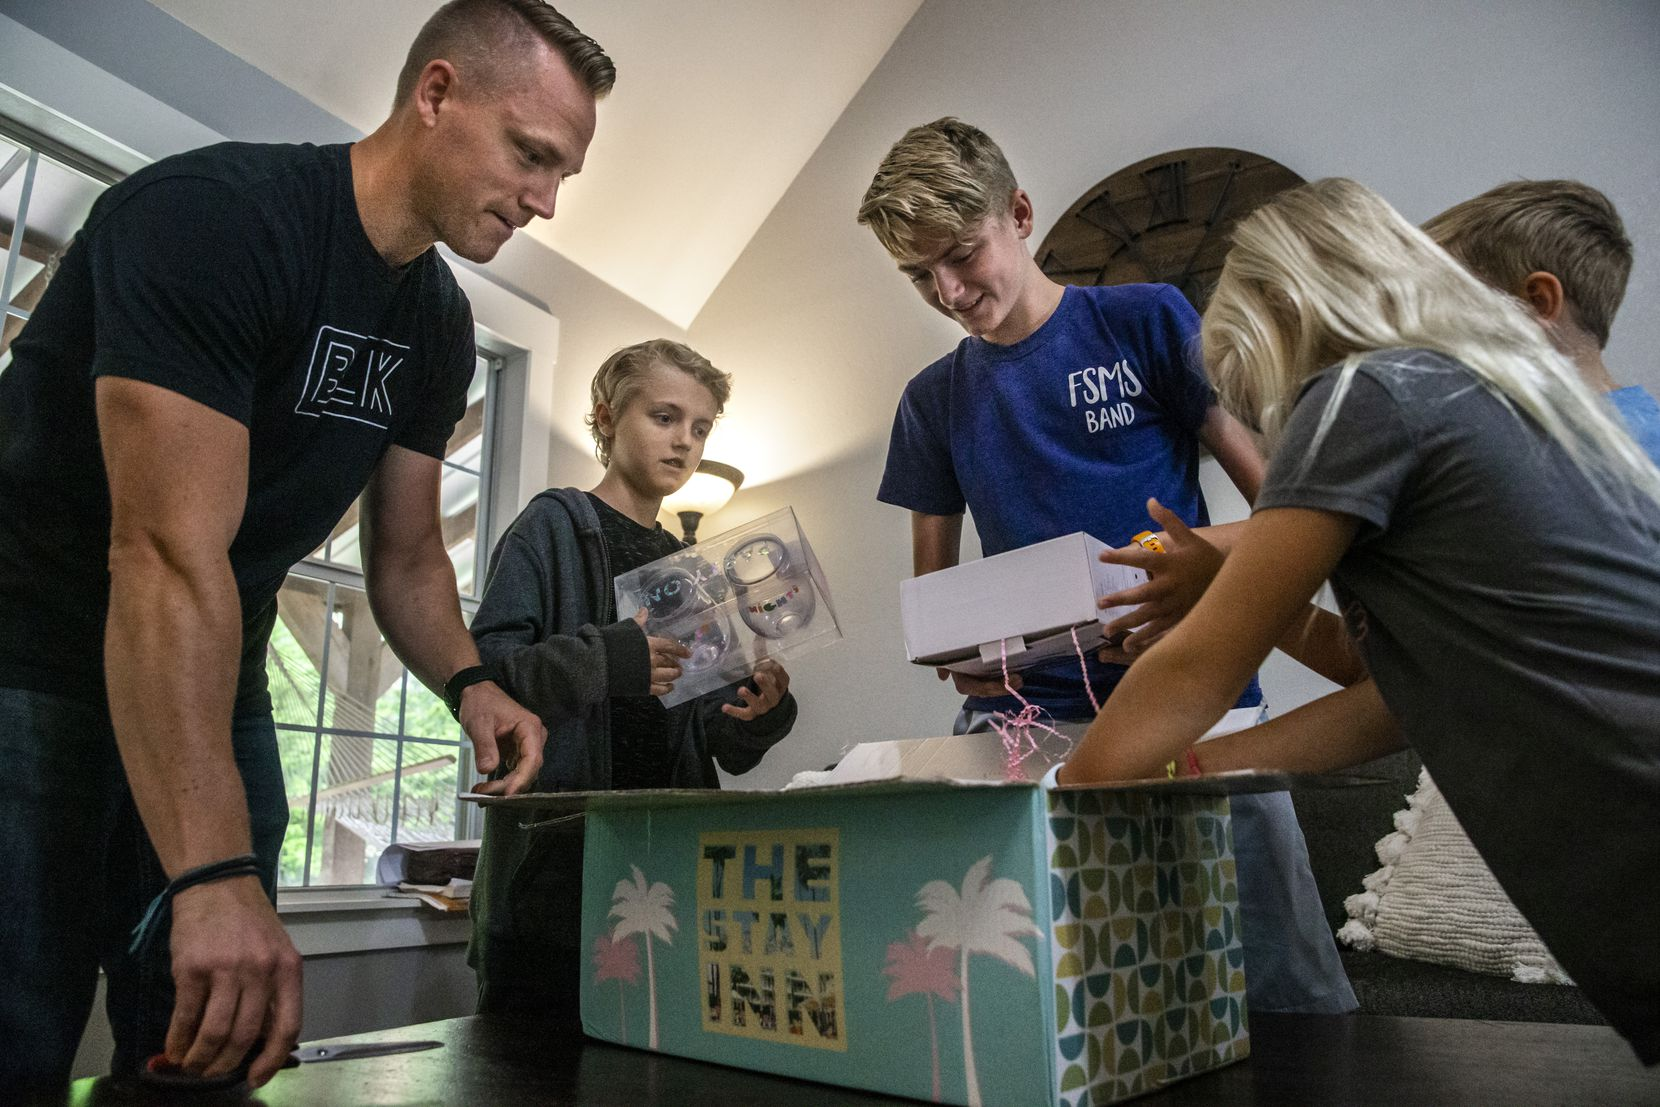 Match affinity design team lead James Walker (left) and his children Cade, 11, Boston, 14, Hudson, 9, and Avery, 7, opened a themed gift box from the company at their home in Midlothian in September.